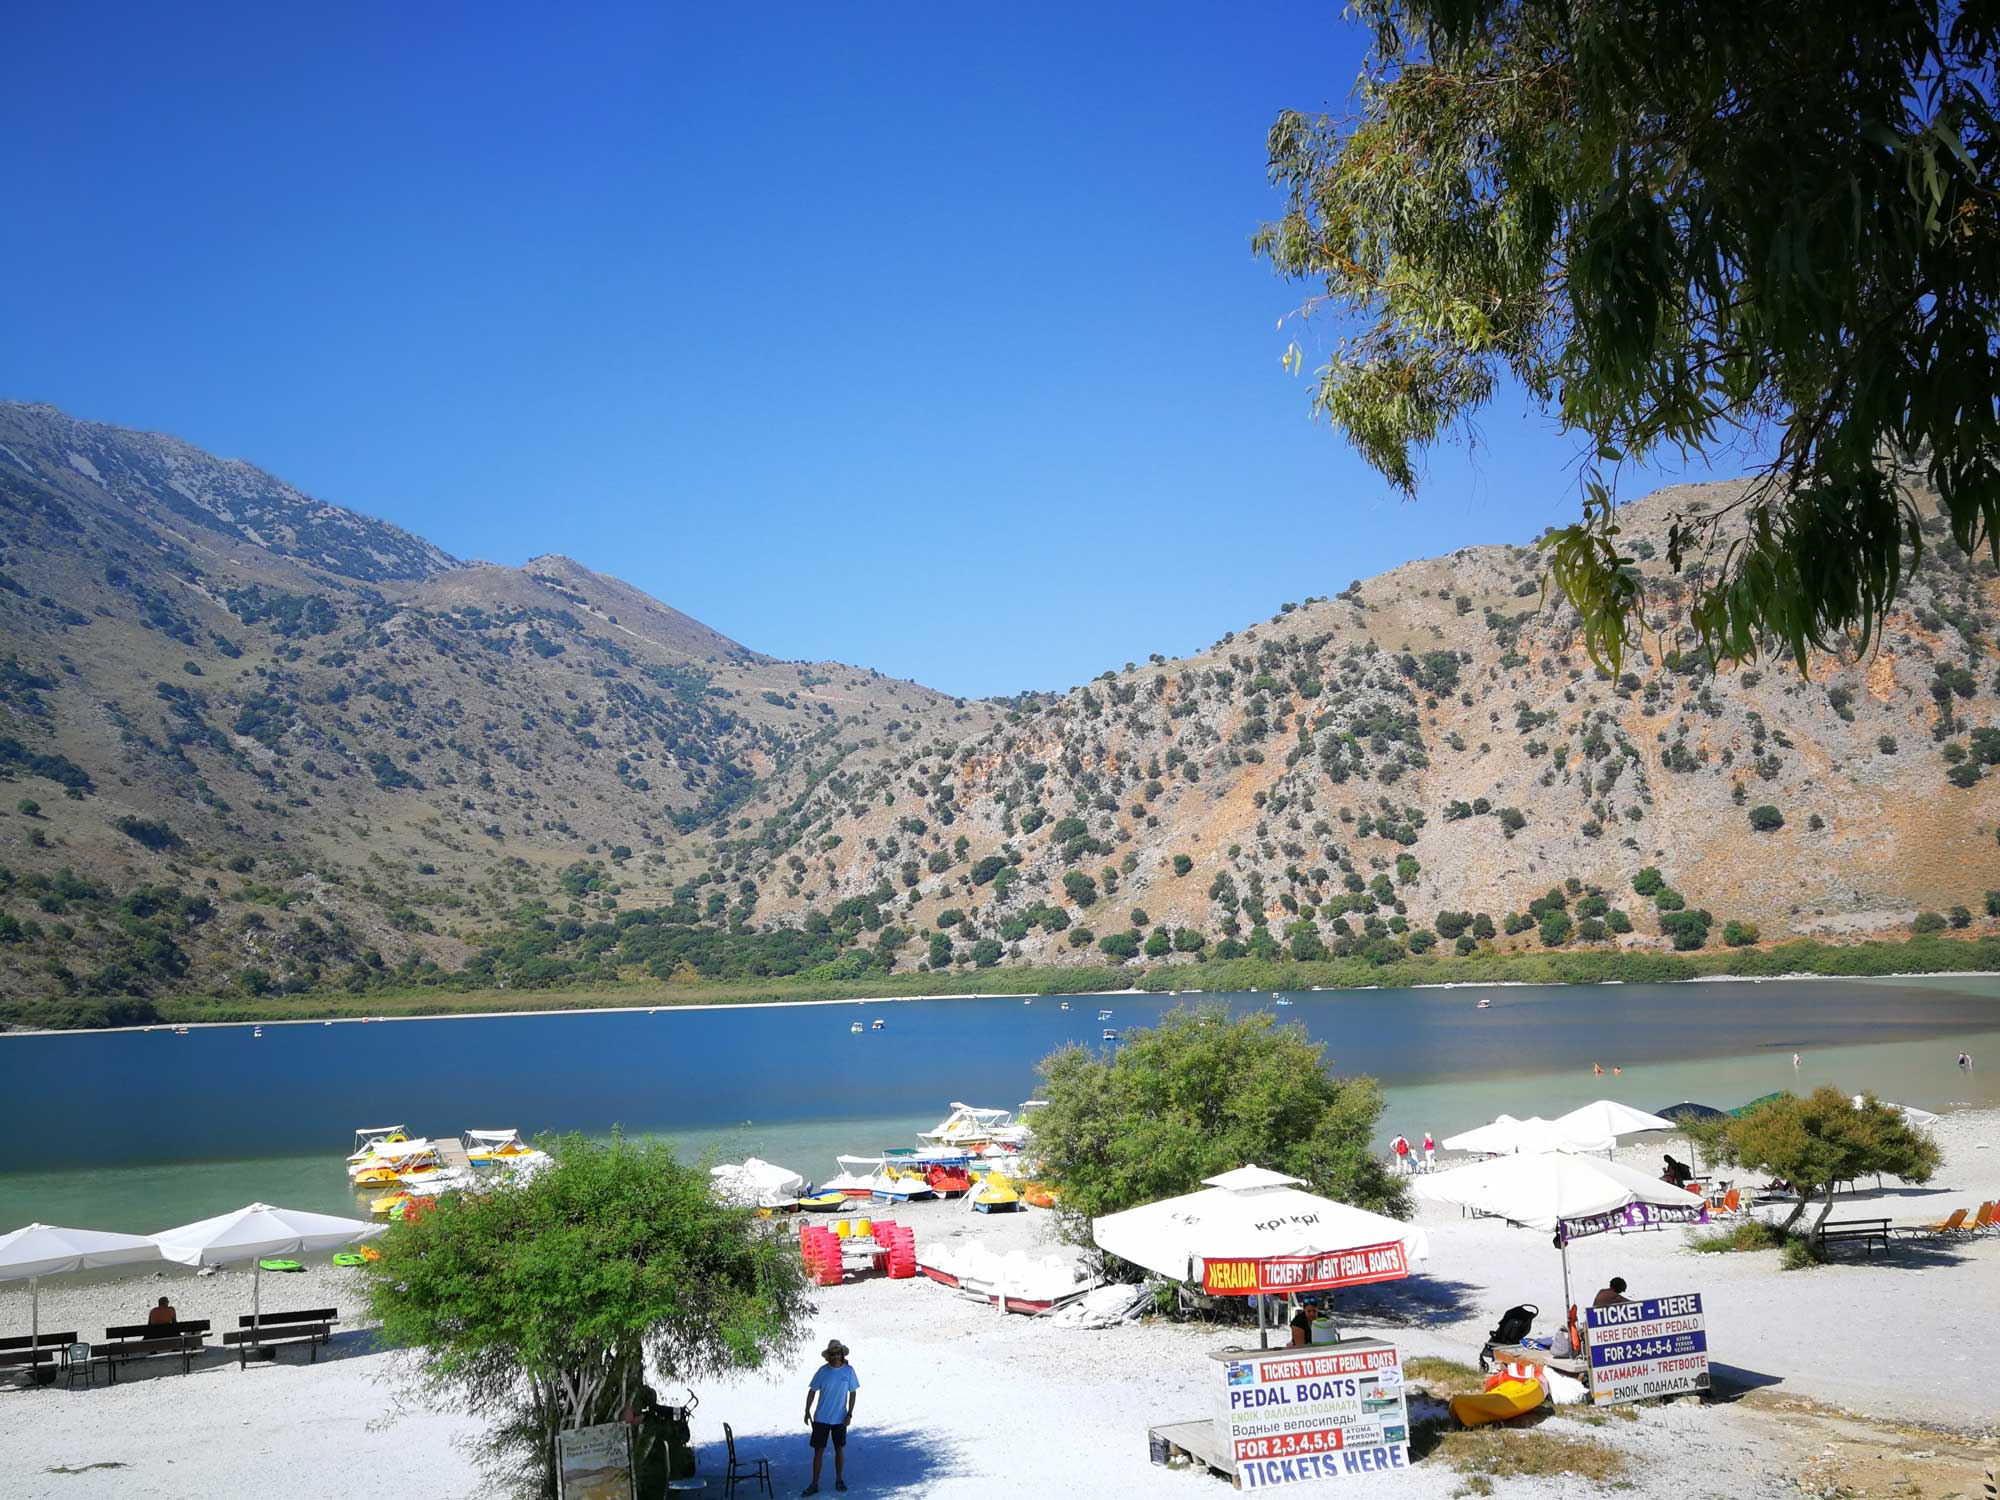 Rent a paddle-boat at Limni Kourna.